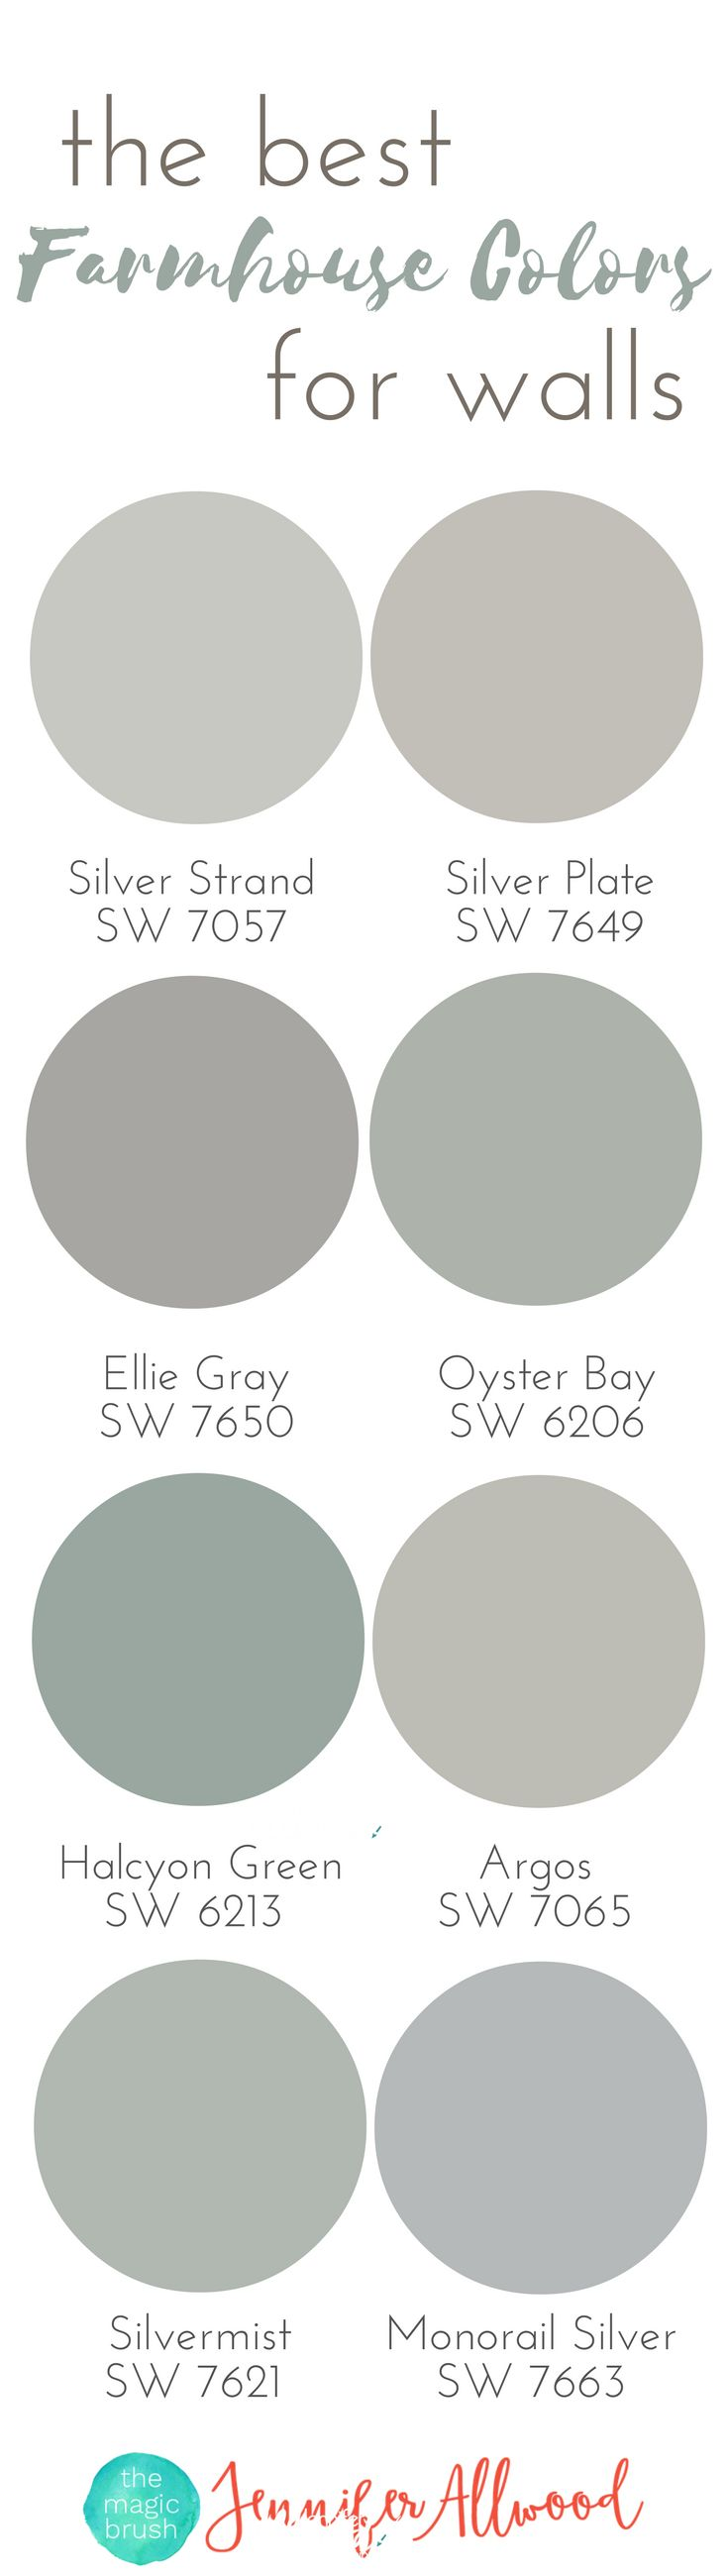 the best Farmhouse Paint Colors for walls | Magic Brush | Jennifer Allwood's Top 50 Wall Paint Colors | Paint Color Ideas | Best Neutral Hues | Interior Paint Colors